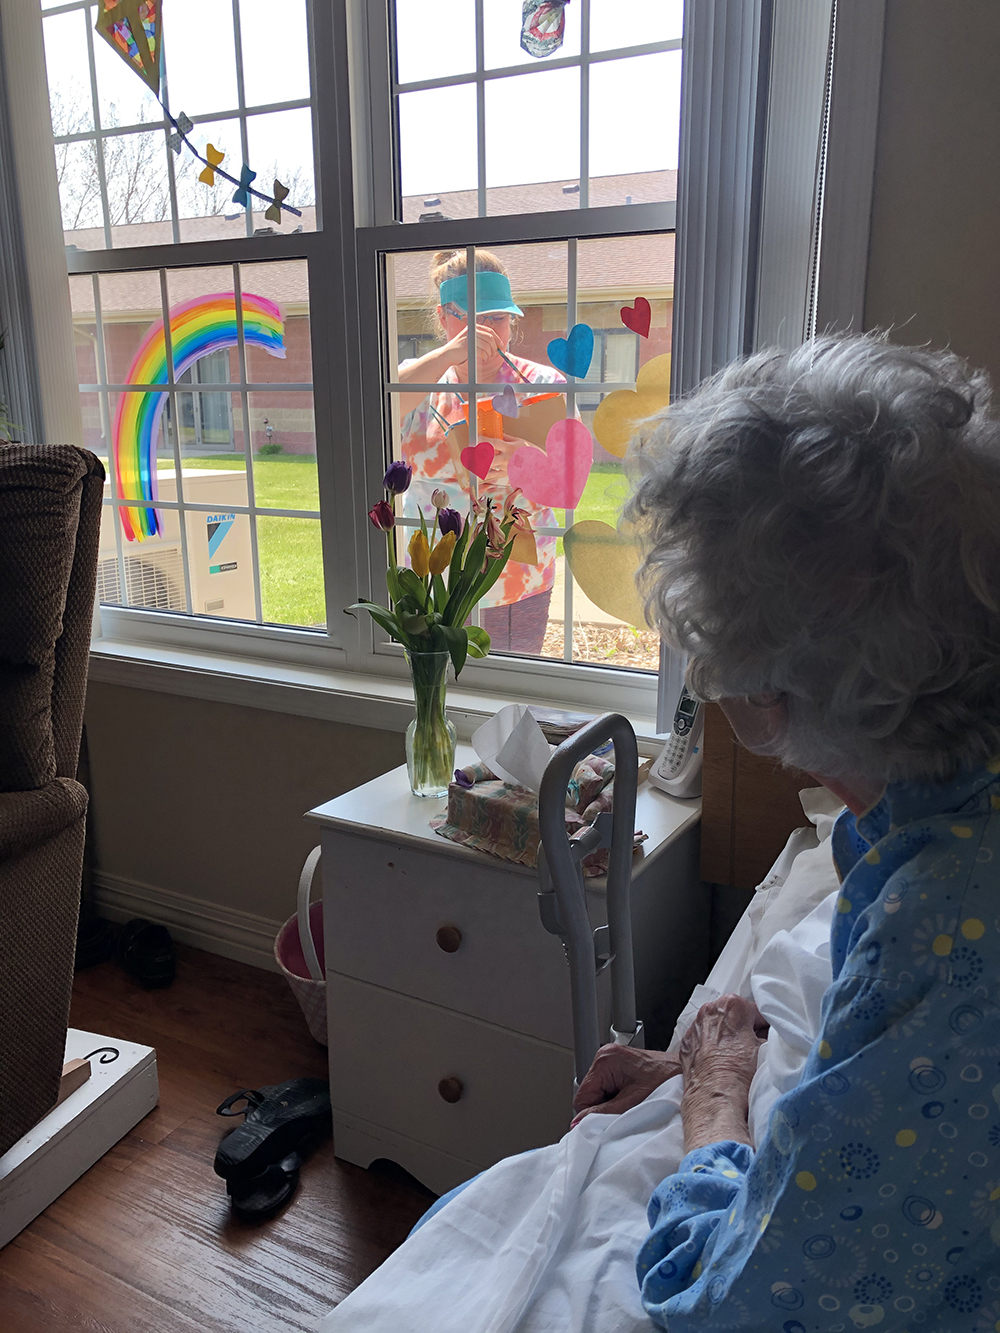 Art teacher Mindi Lill paints on the window of an elder during Covid-19; Maple Manor Care Center/Northern Lights Arts Council, Langdon, ND